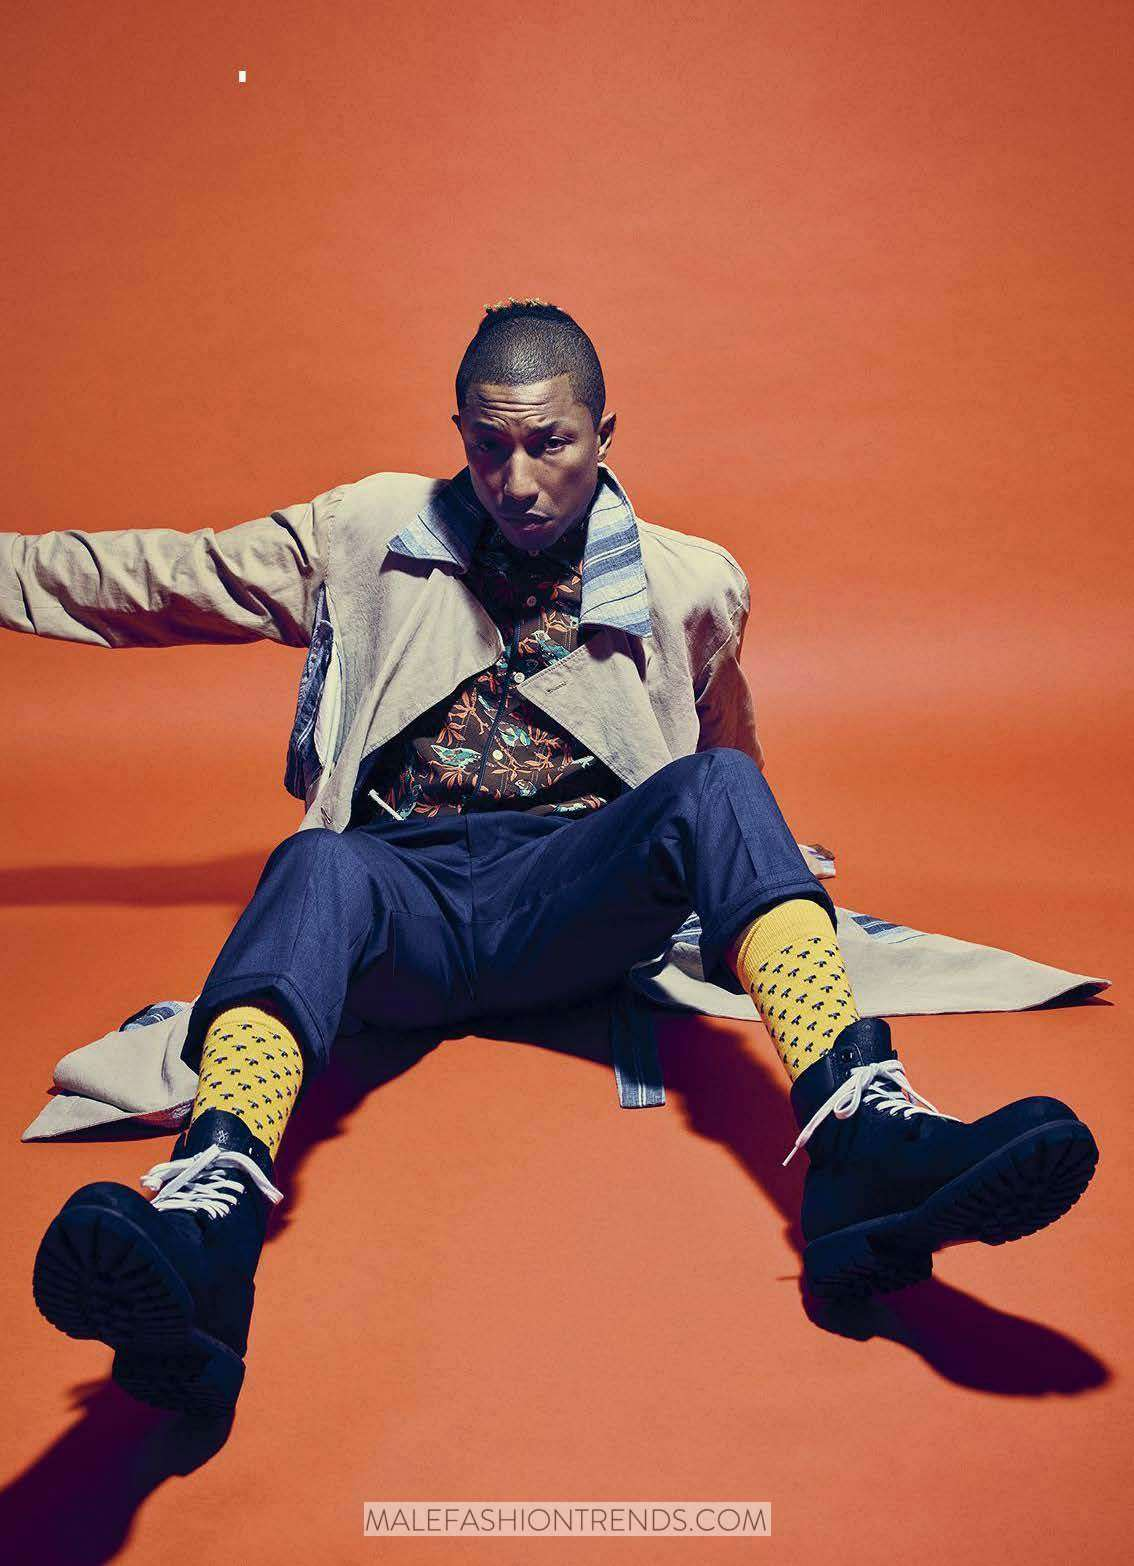 Pharrell Wiliams para Esquire USA por Mario Sorrenti